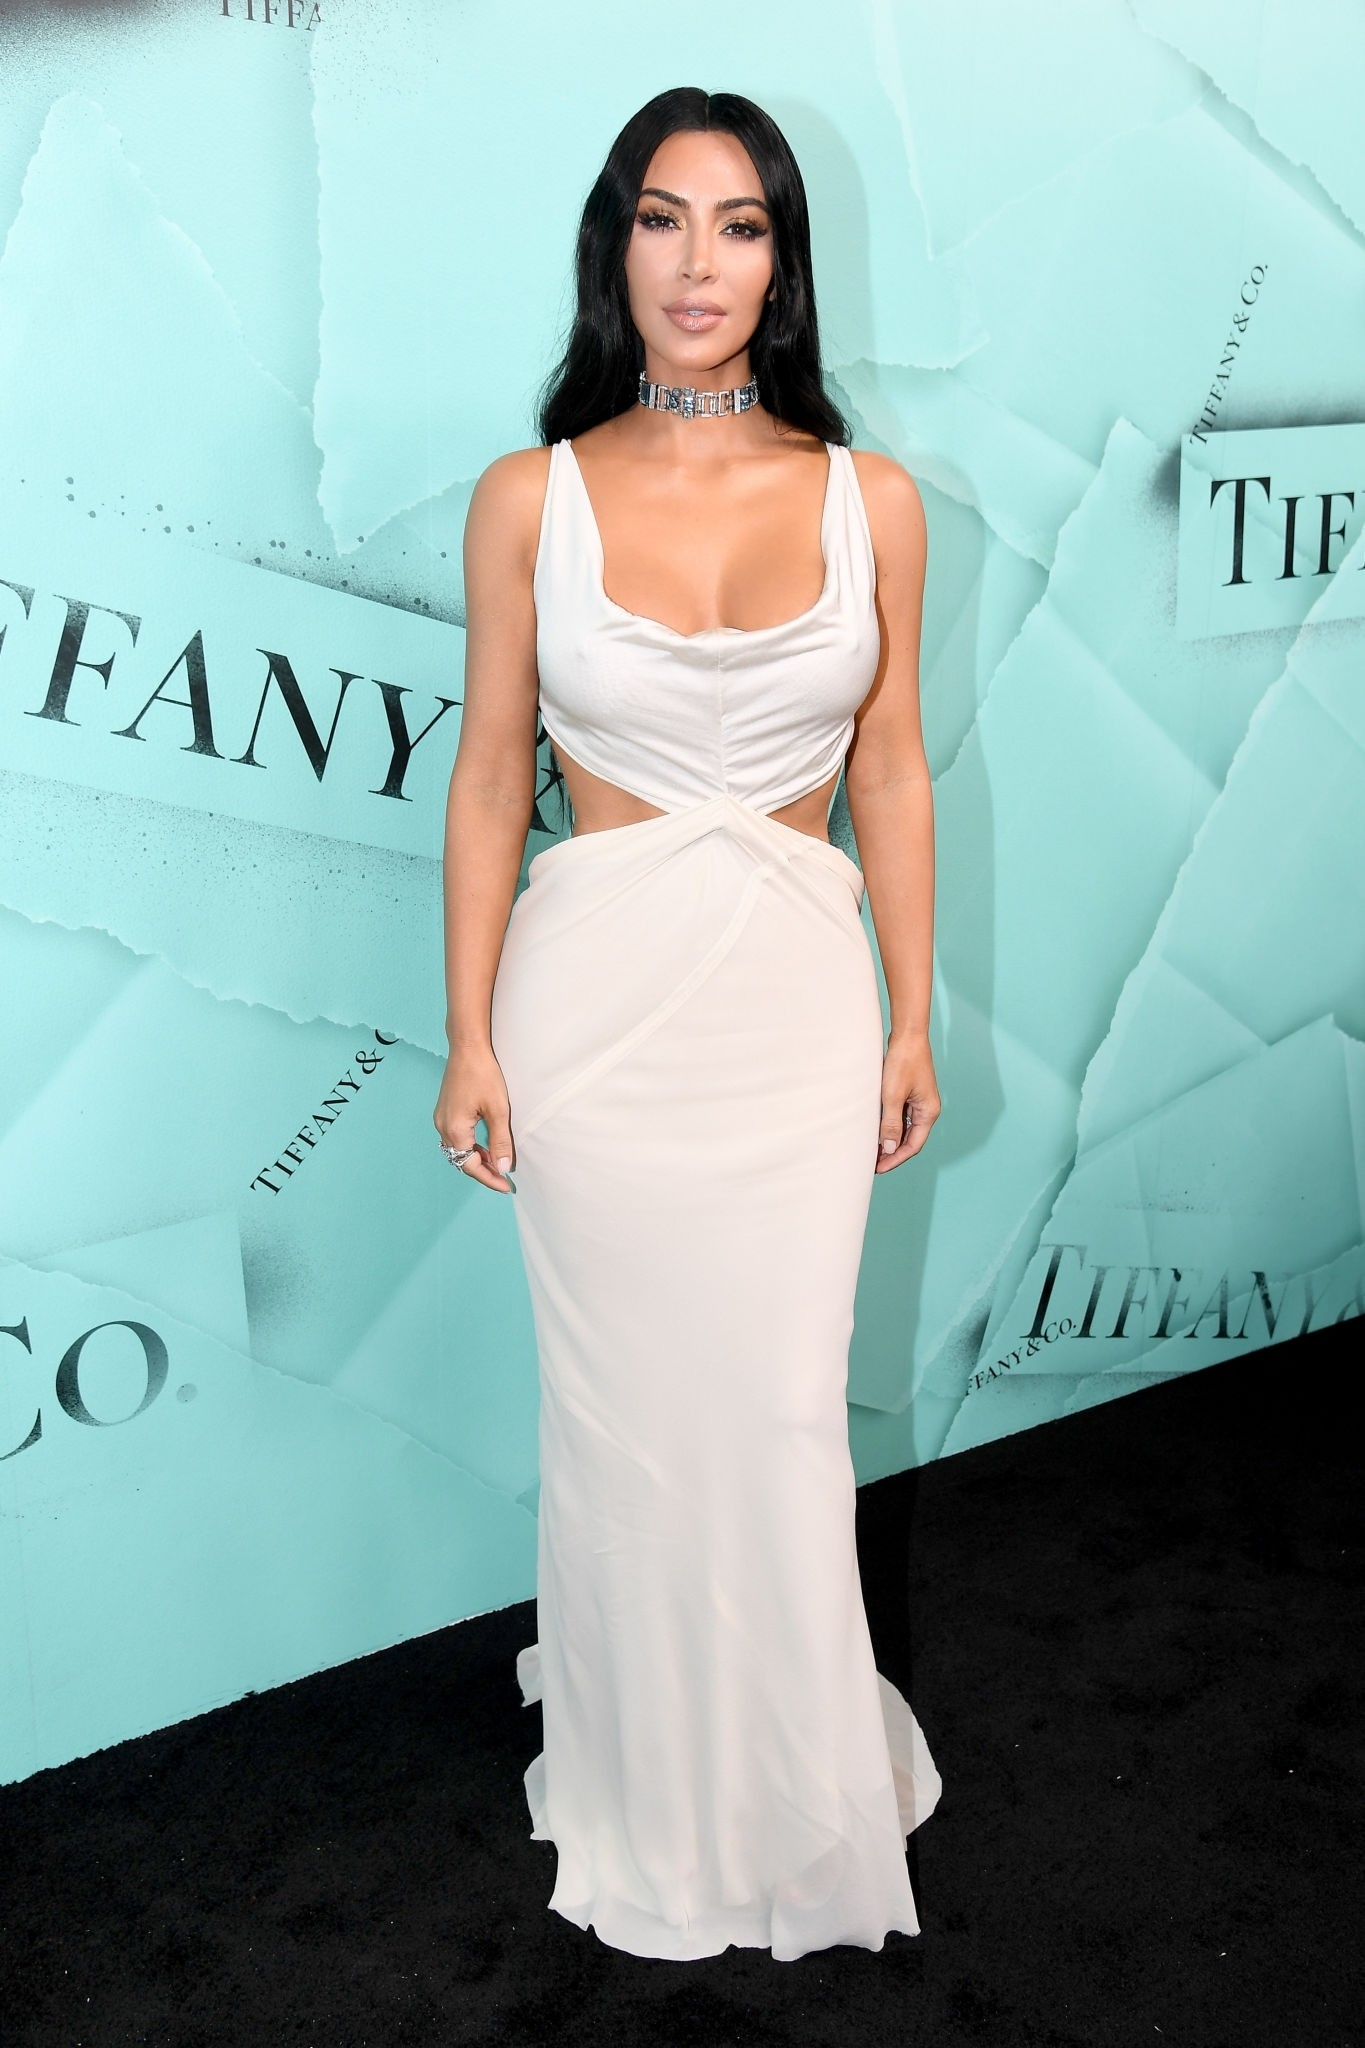 Kim Kardashian - Sexy In White Pictures - Sexy Actress Pictures | Hot Actress Pictures - ActressSnaps.com